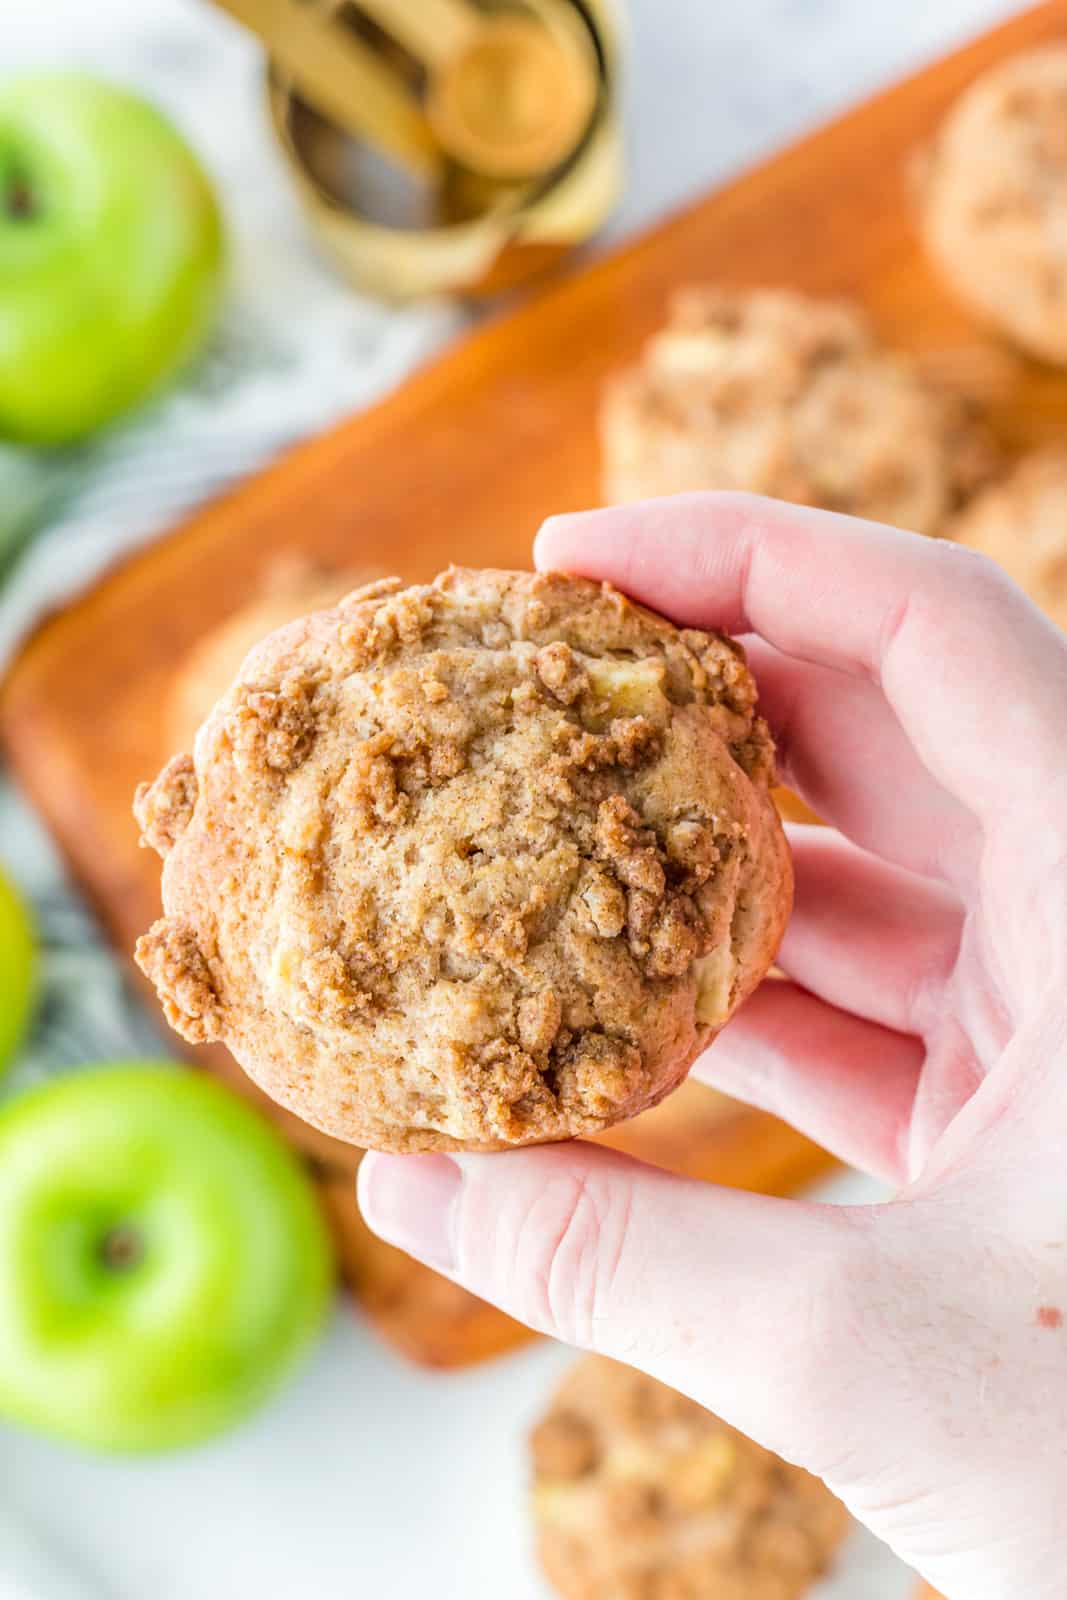 Hand holding up one Apple Cinnamon Muffin showing topping.